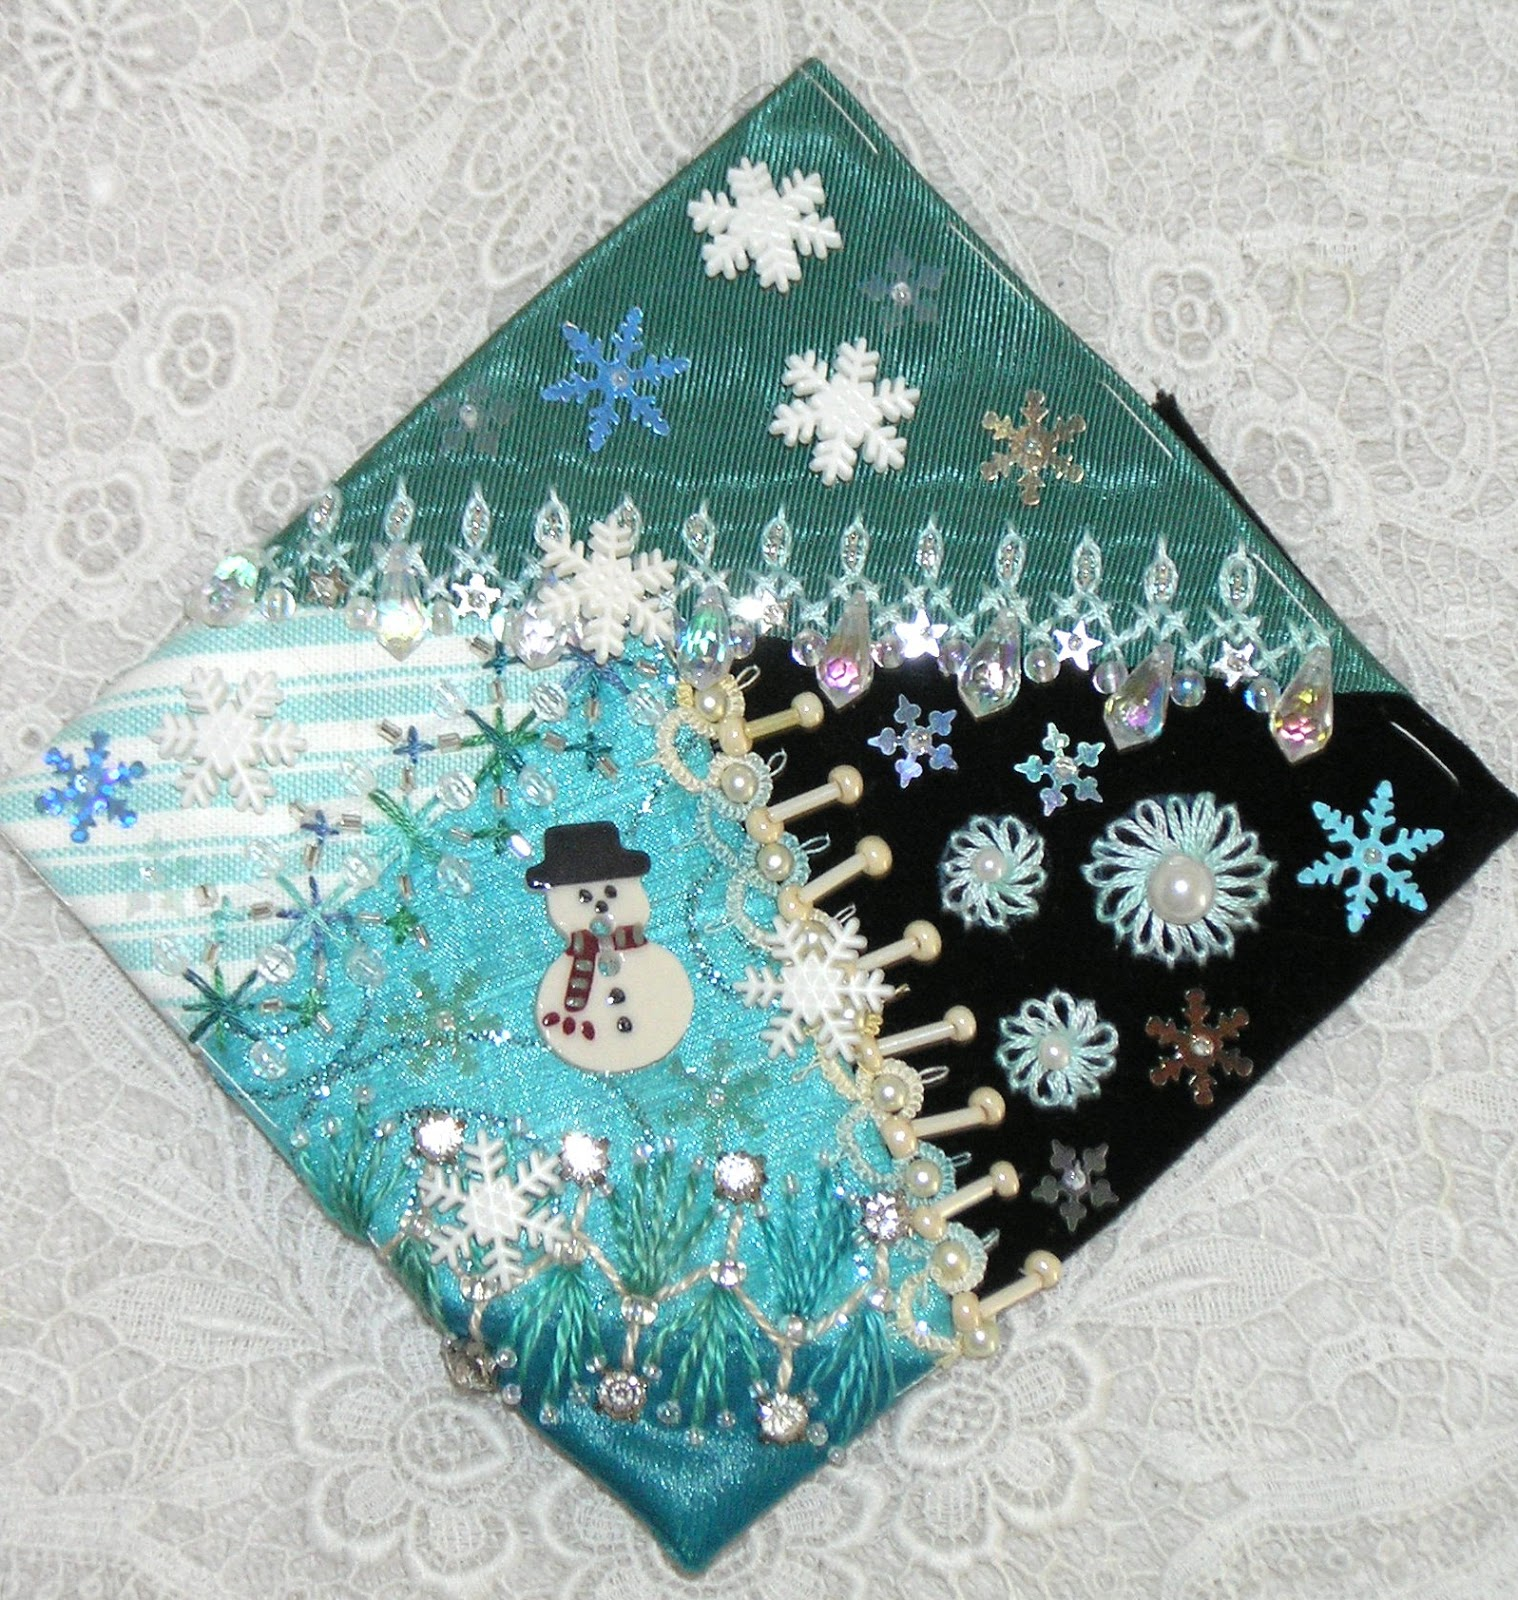 Kitty And Me Designs: Crazy Quilt Blocks for Christmas ...